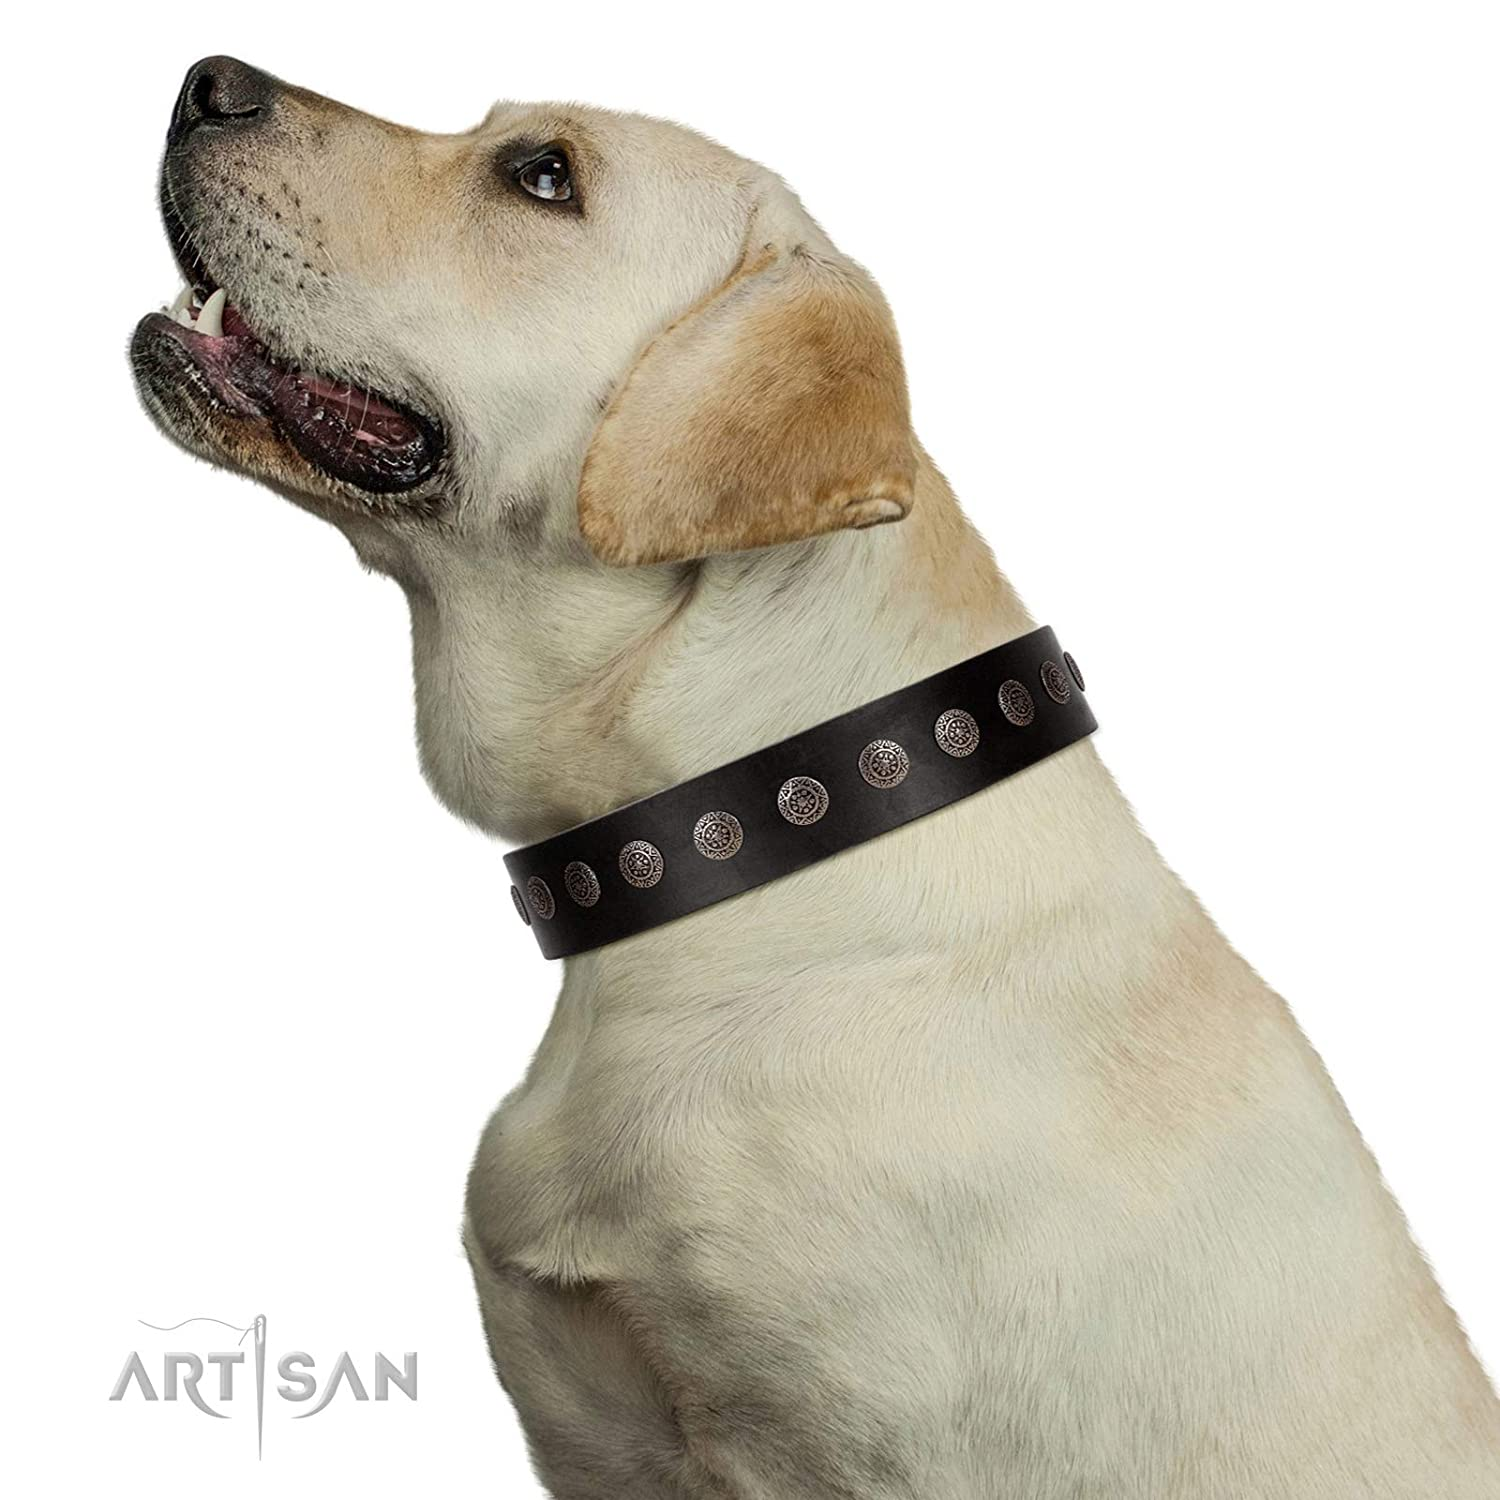 Fits for 30 inch (75cm) dog's neck size FDT Artisan 30 inch Silent Star Handmade Designer Black Leather Dog Collar with Engraved Plates 1 1 2 inch (40 cm) Wide Gift Box Included